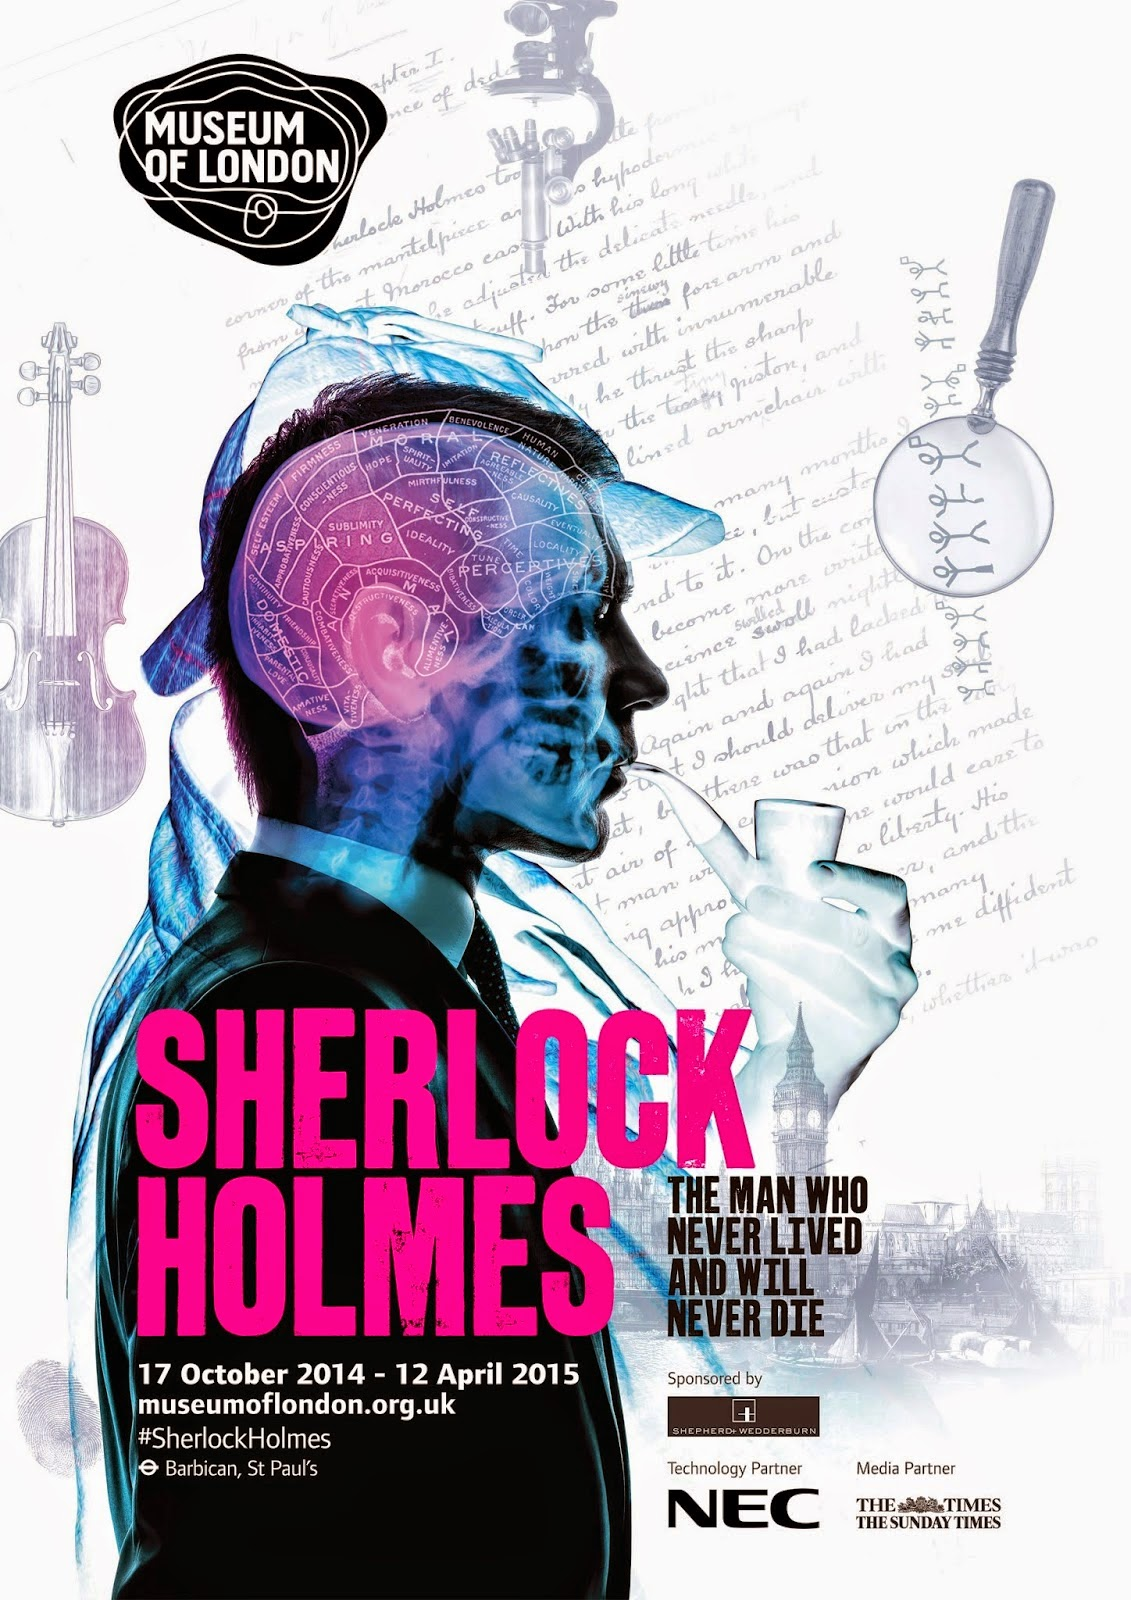 The first Sherlock Holmes exhibition in England in more than 60 years.